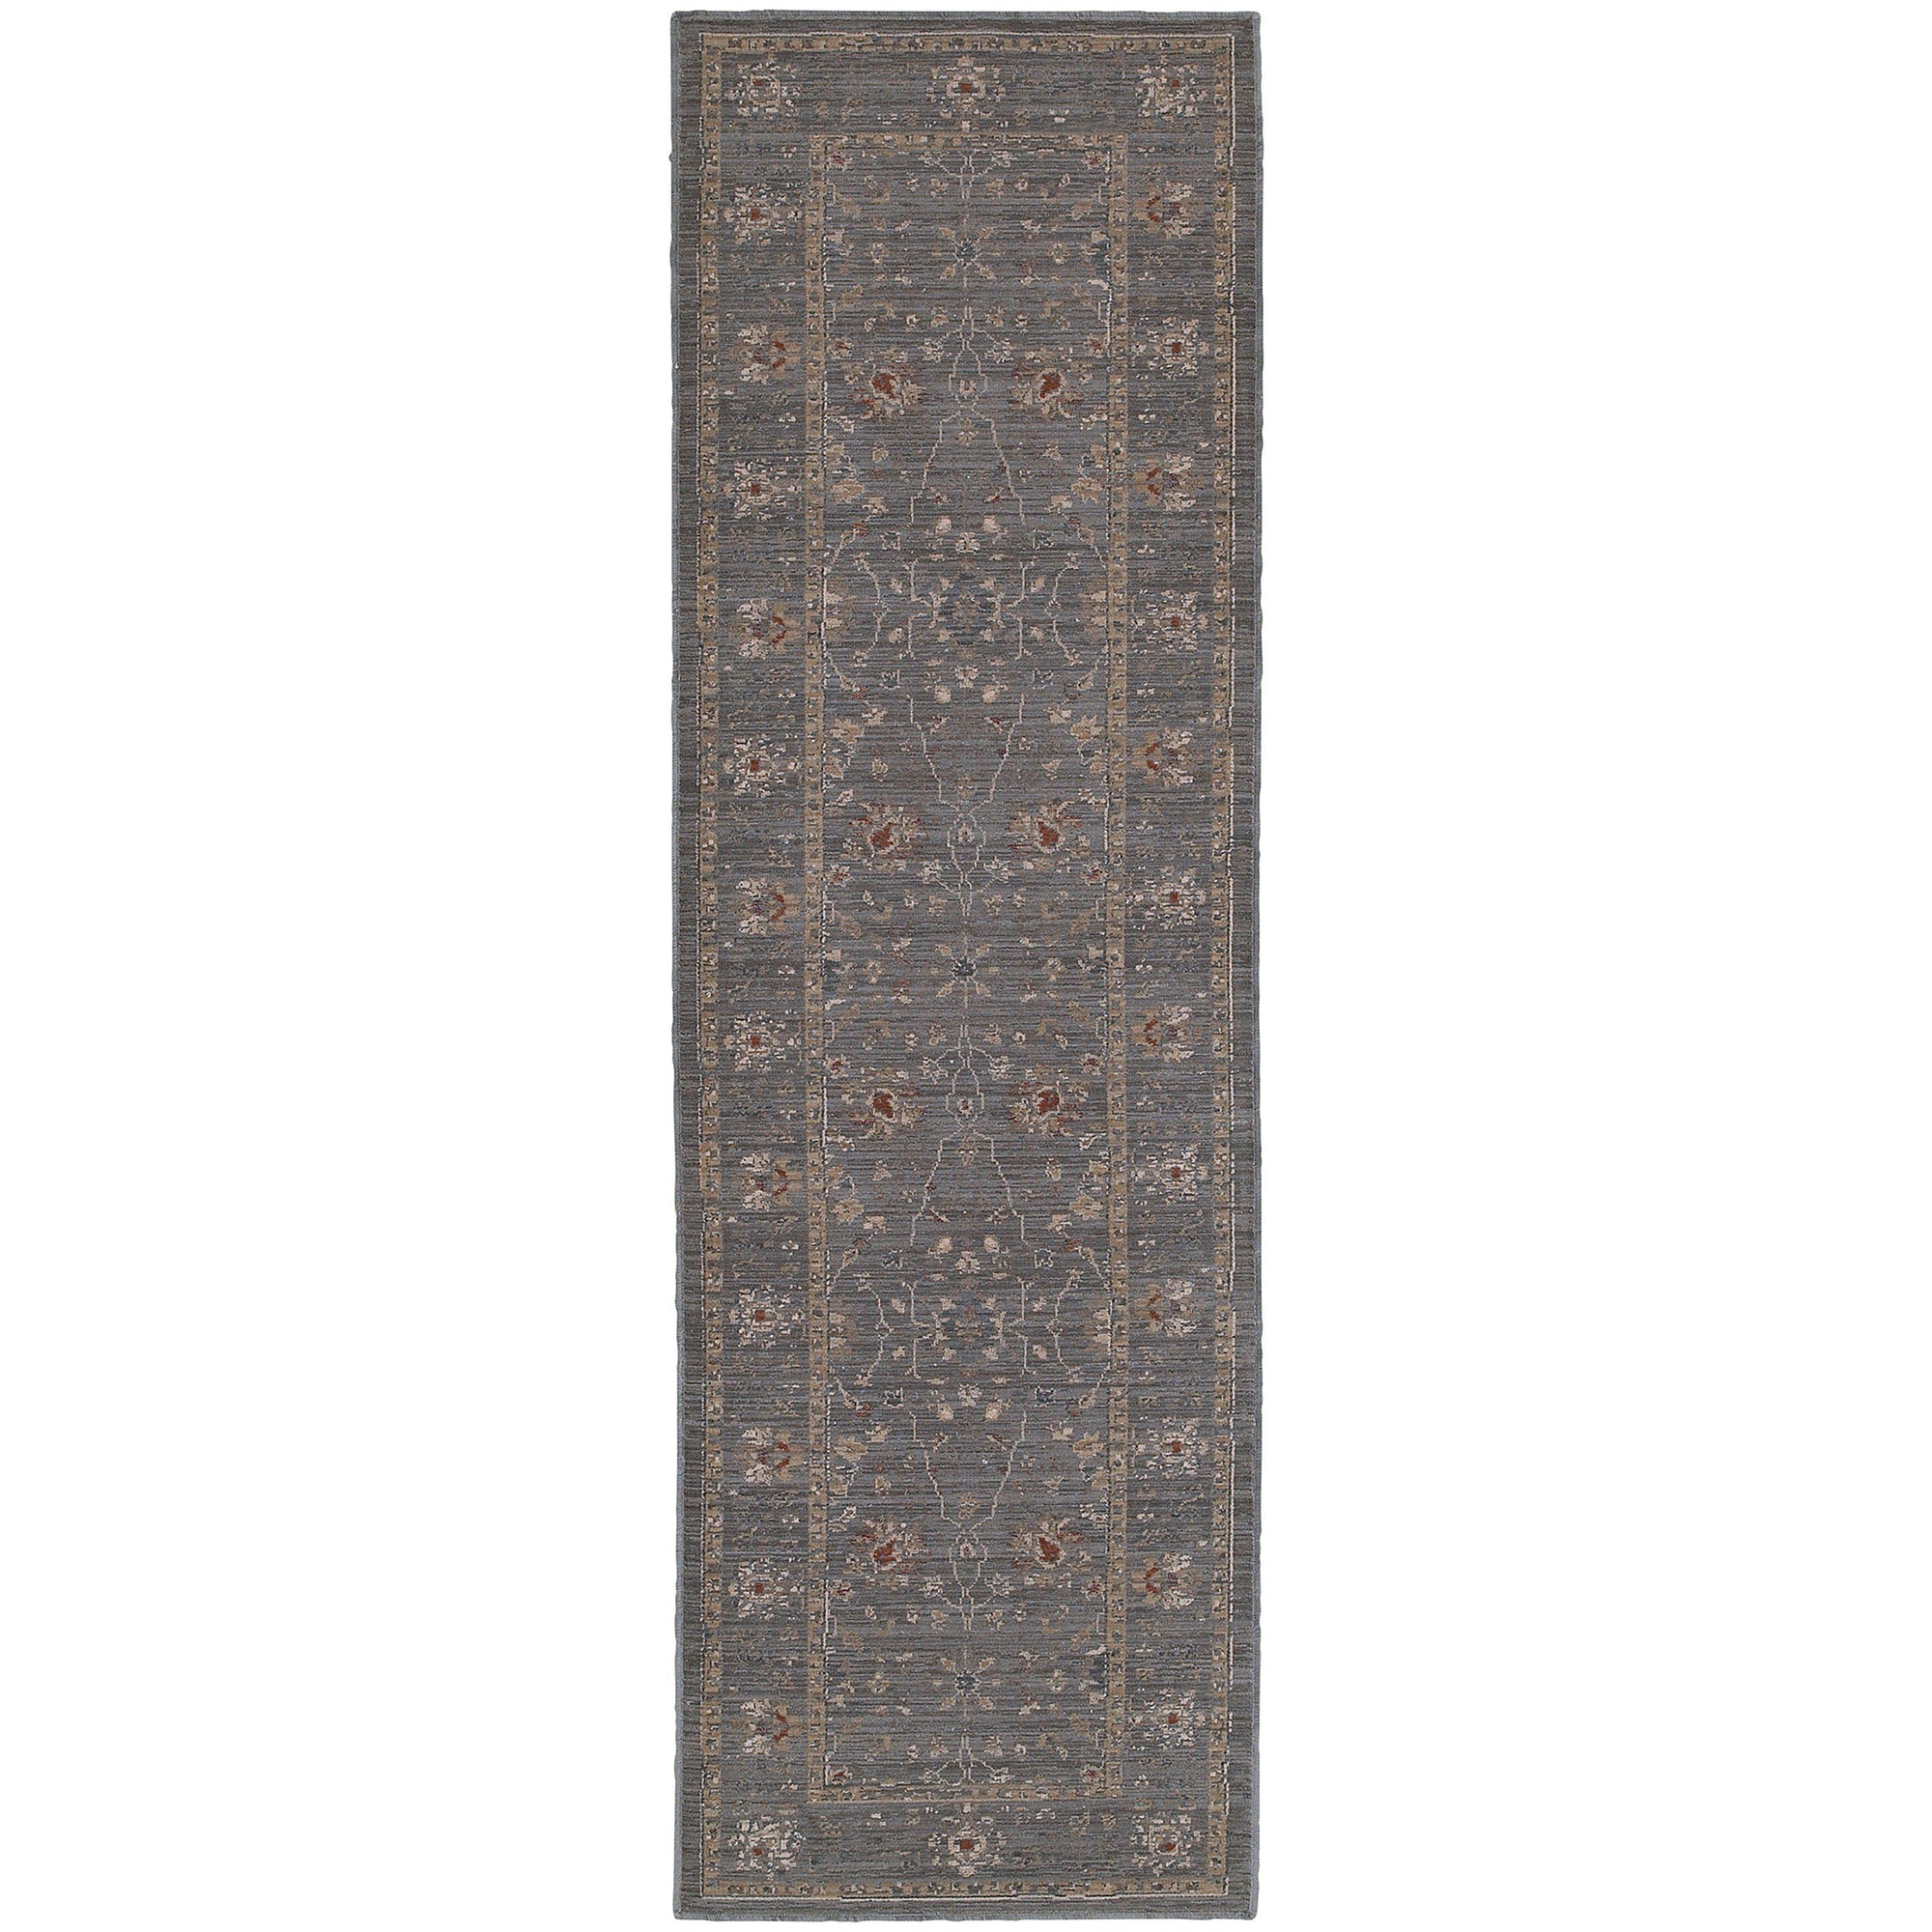 "Tommy Bahama Home Vintage 534k Blue/Gold-Area Rug-Tommy Bahama Home-1'10"" X 3' 3""-The Rug Truck"